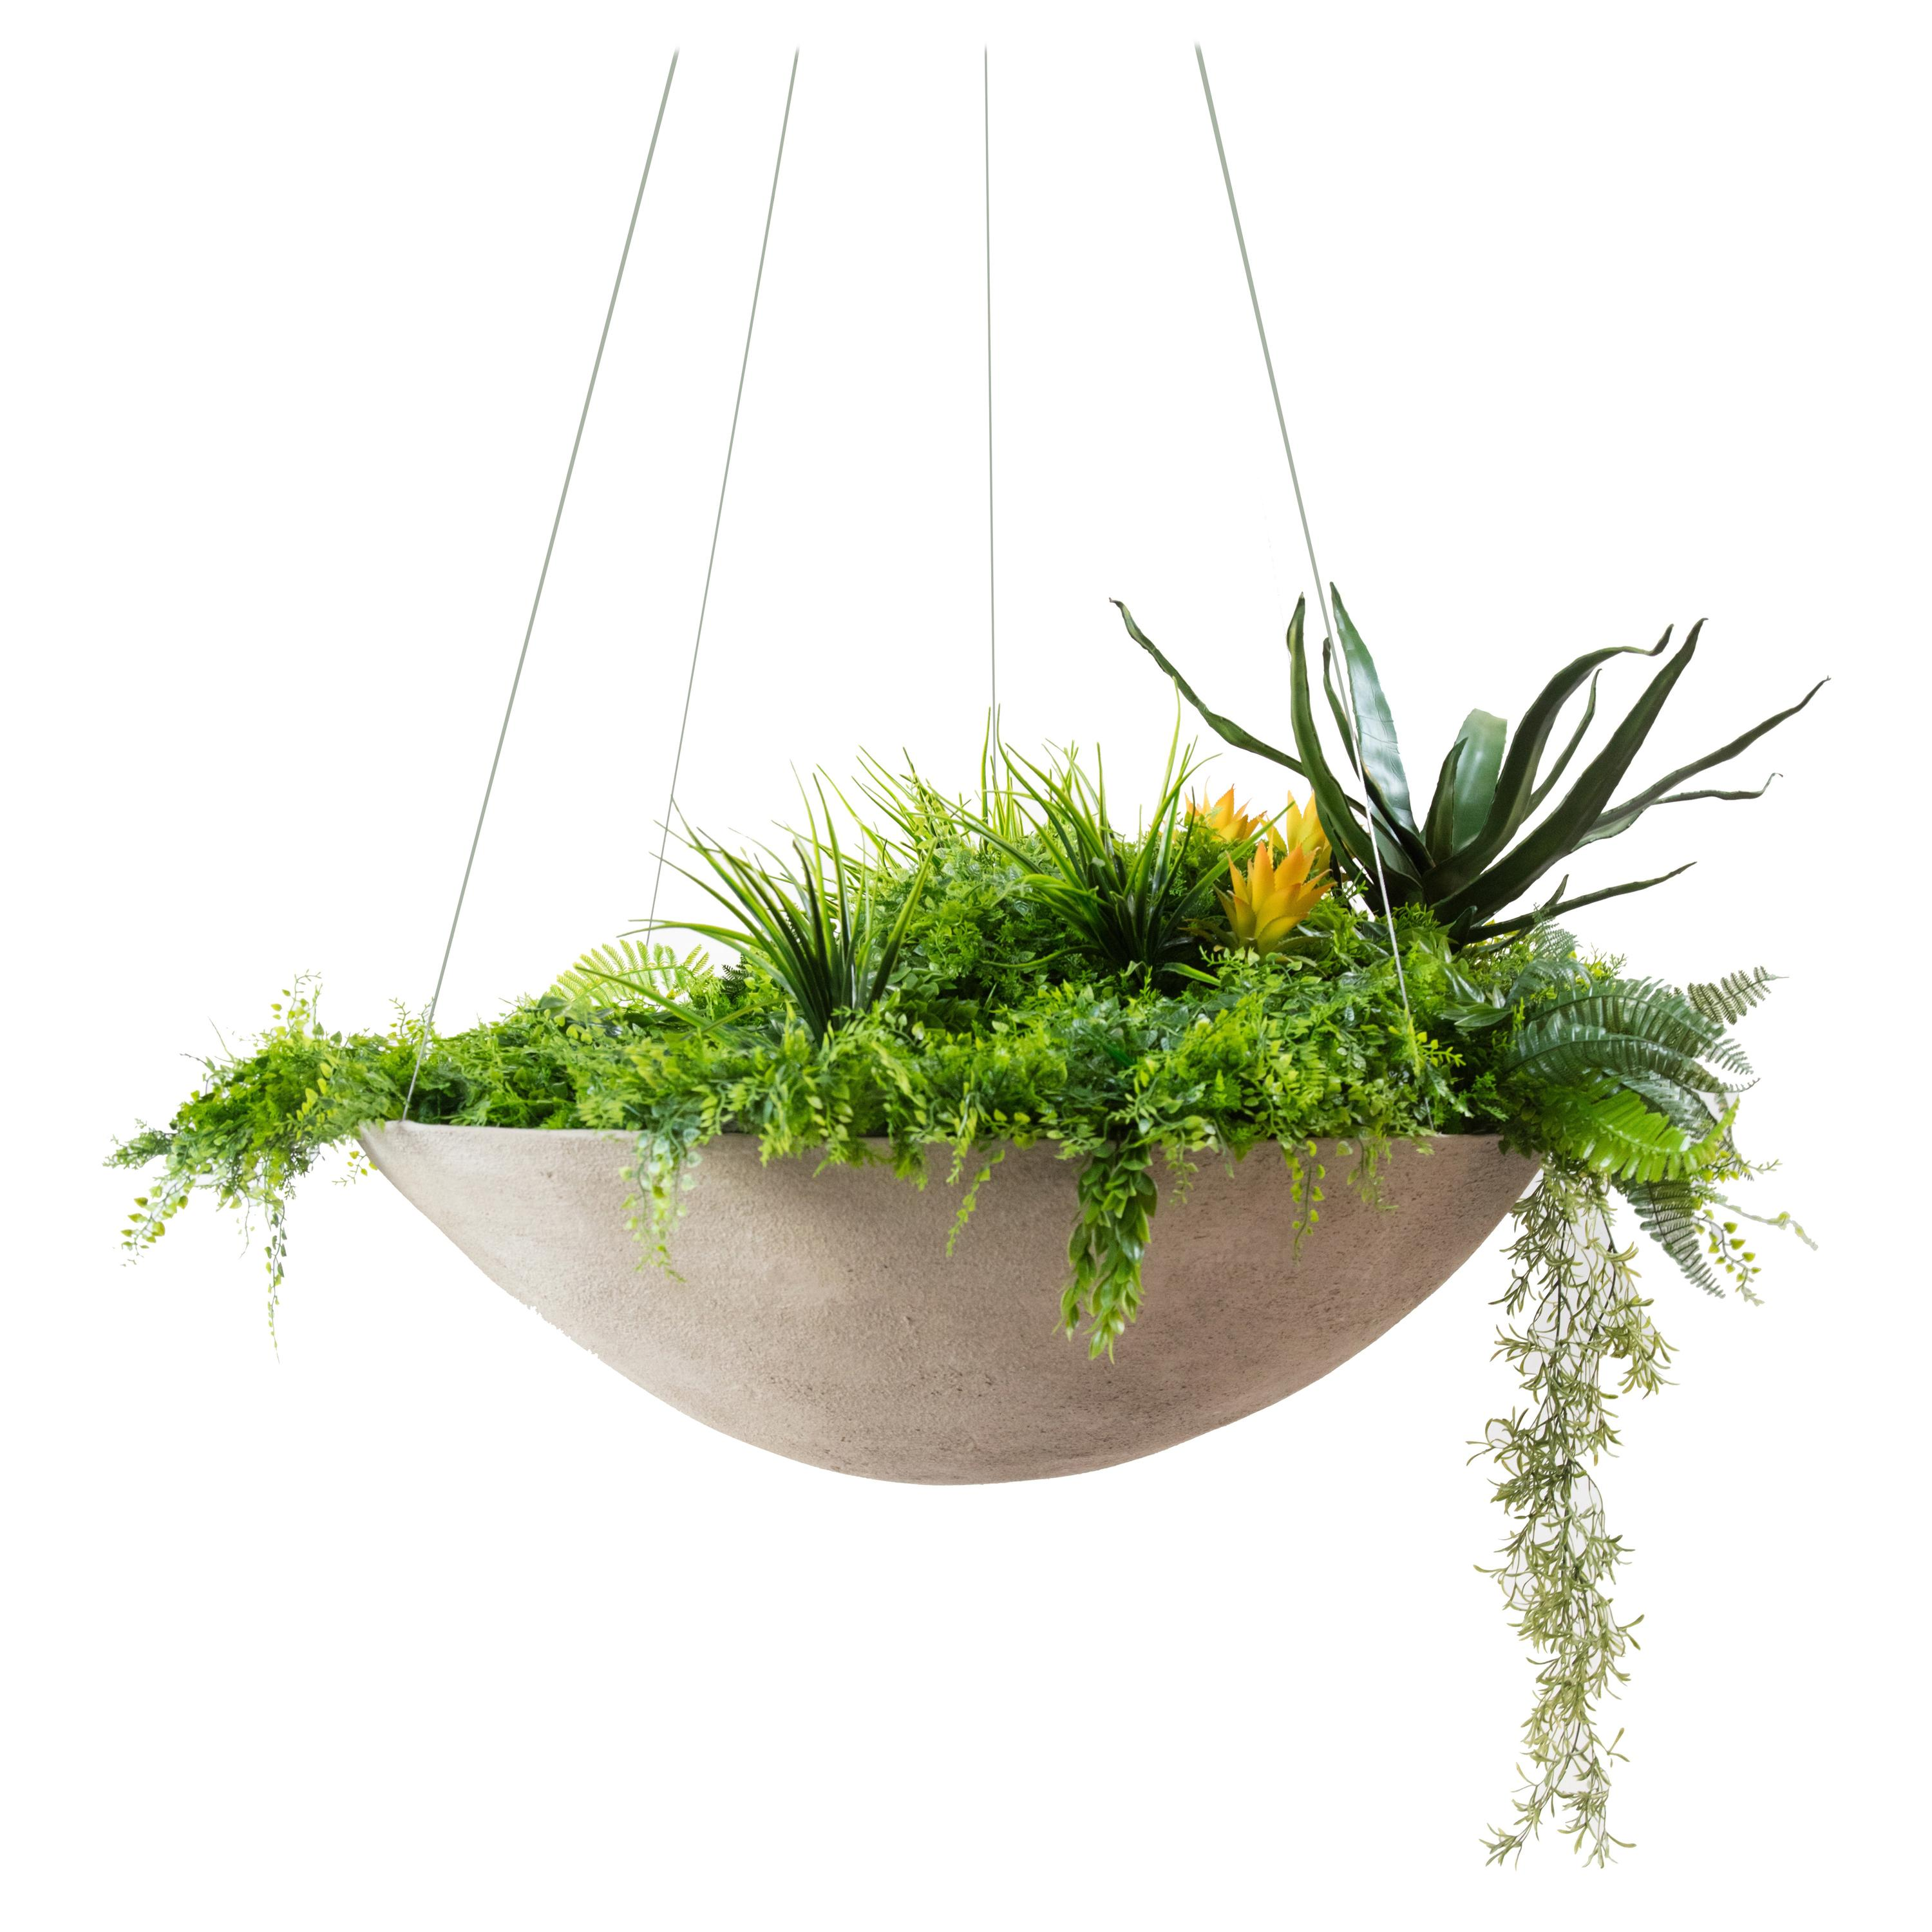 """Ukiyo Saucer, Concrete Hanging Planter by OPIARY (D11.5"""", H5.5"""")"""